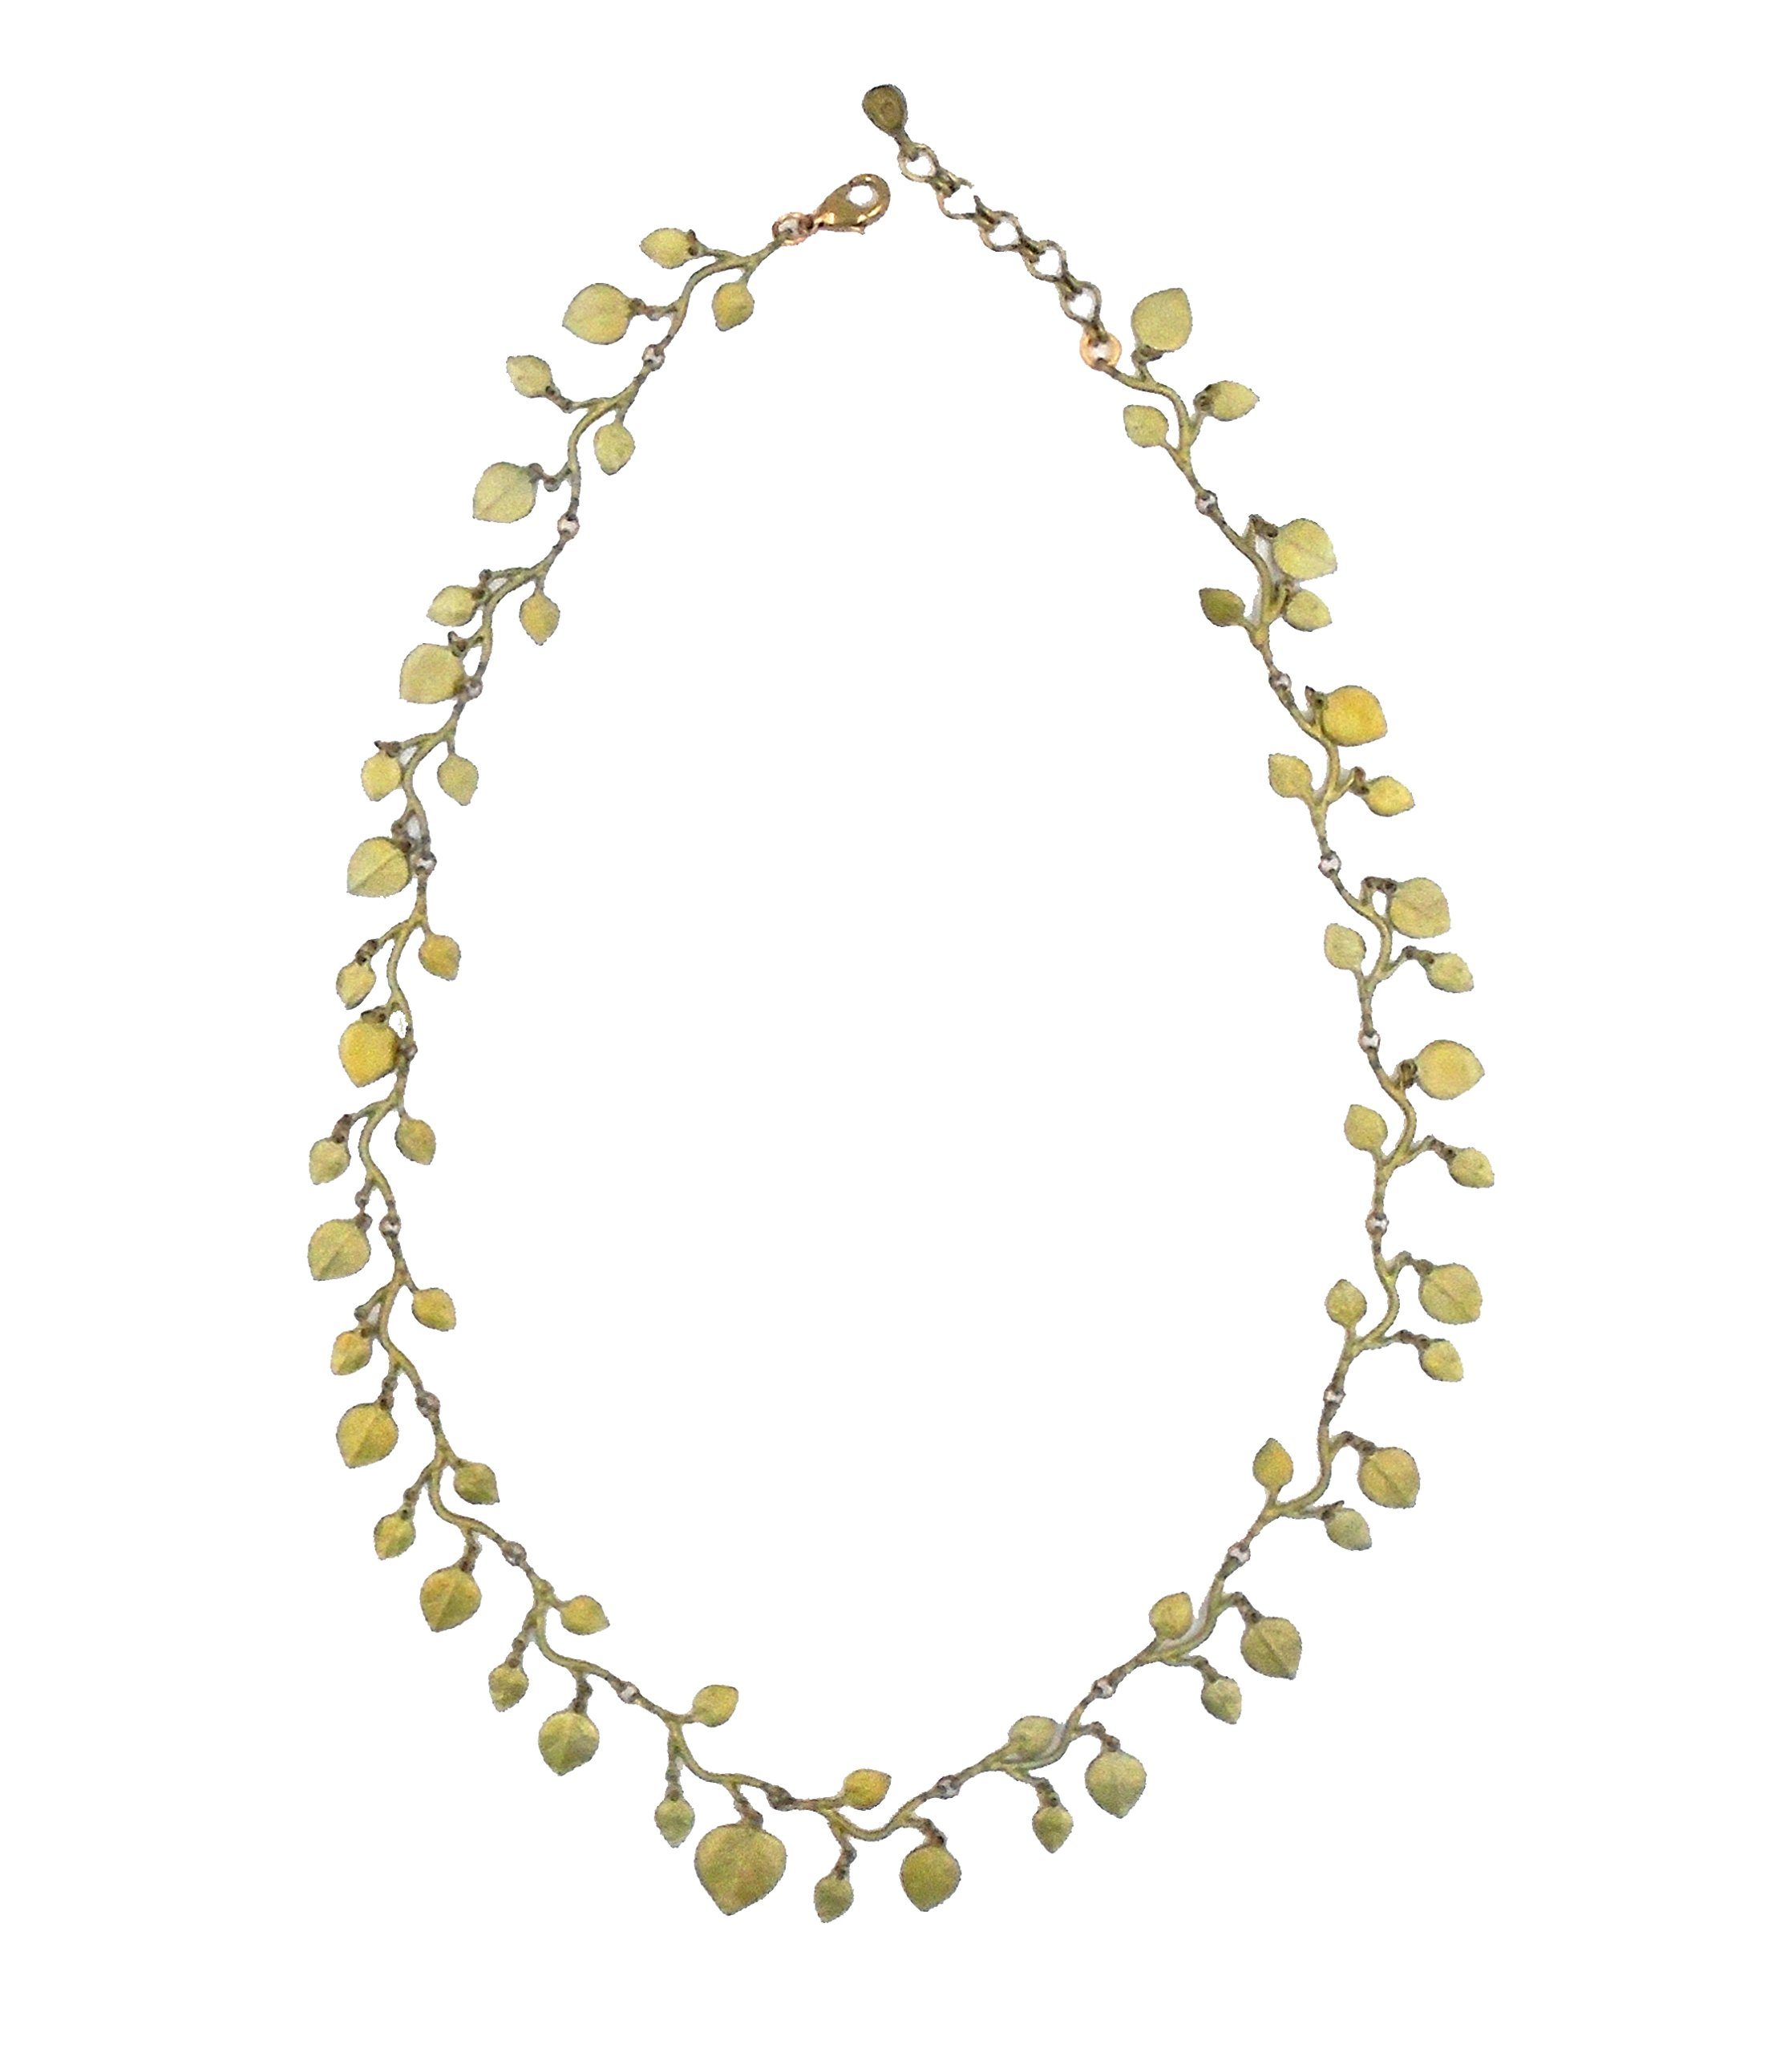 OURS EXCLUSIVELY EUCALYPTUS LEAF NECKLACE BY MICHAEL MICHAUD FOR SILVER SEASONS…